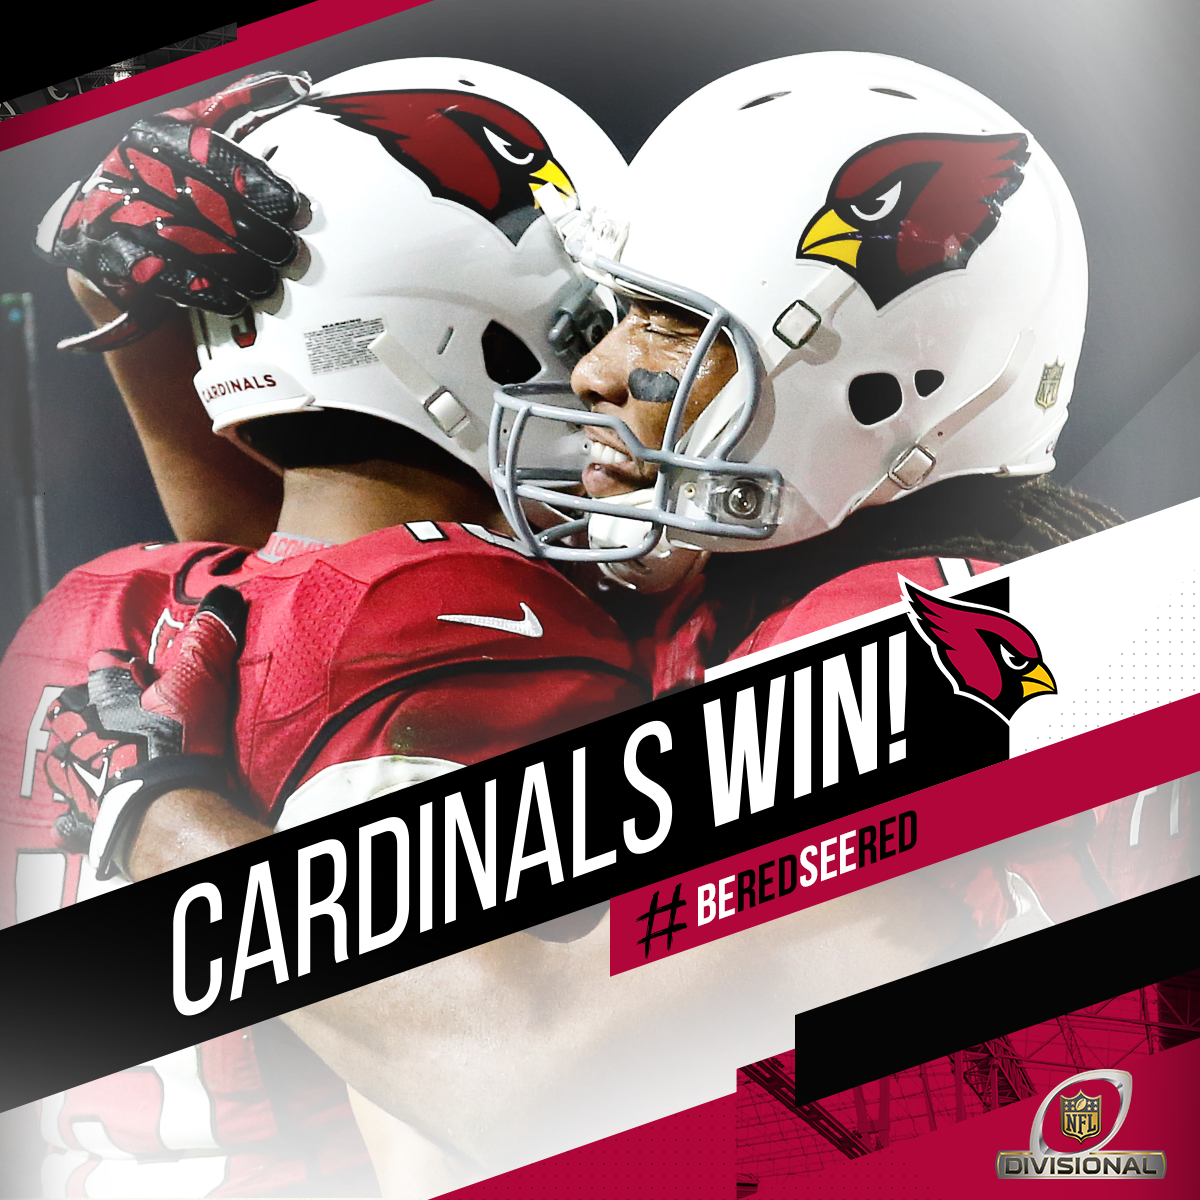 Touchdown @LarryFitzgerald! It's over! The #AZCardinals are off to the NFC Championship!  #BeRedSeeRed #GBvsAZ https://t.co/x7wlRlN4Qm